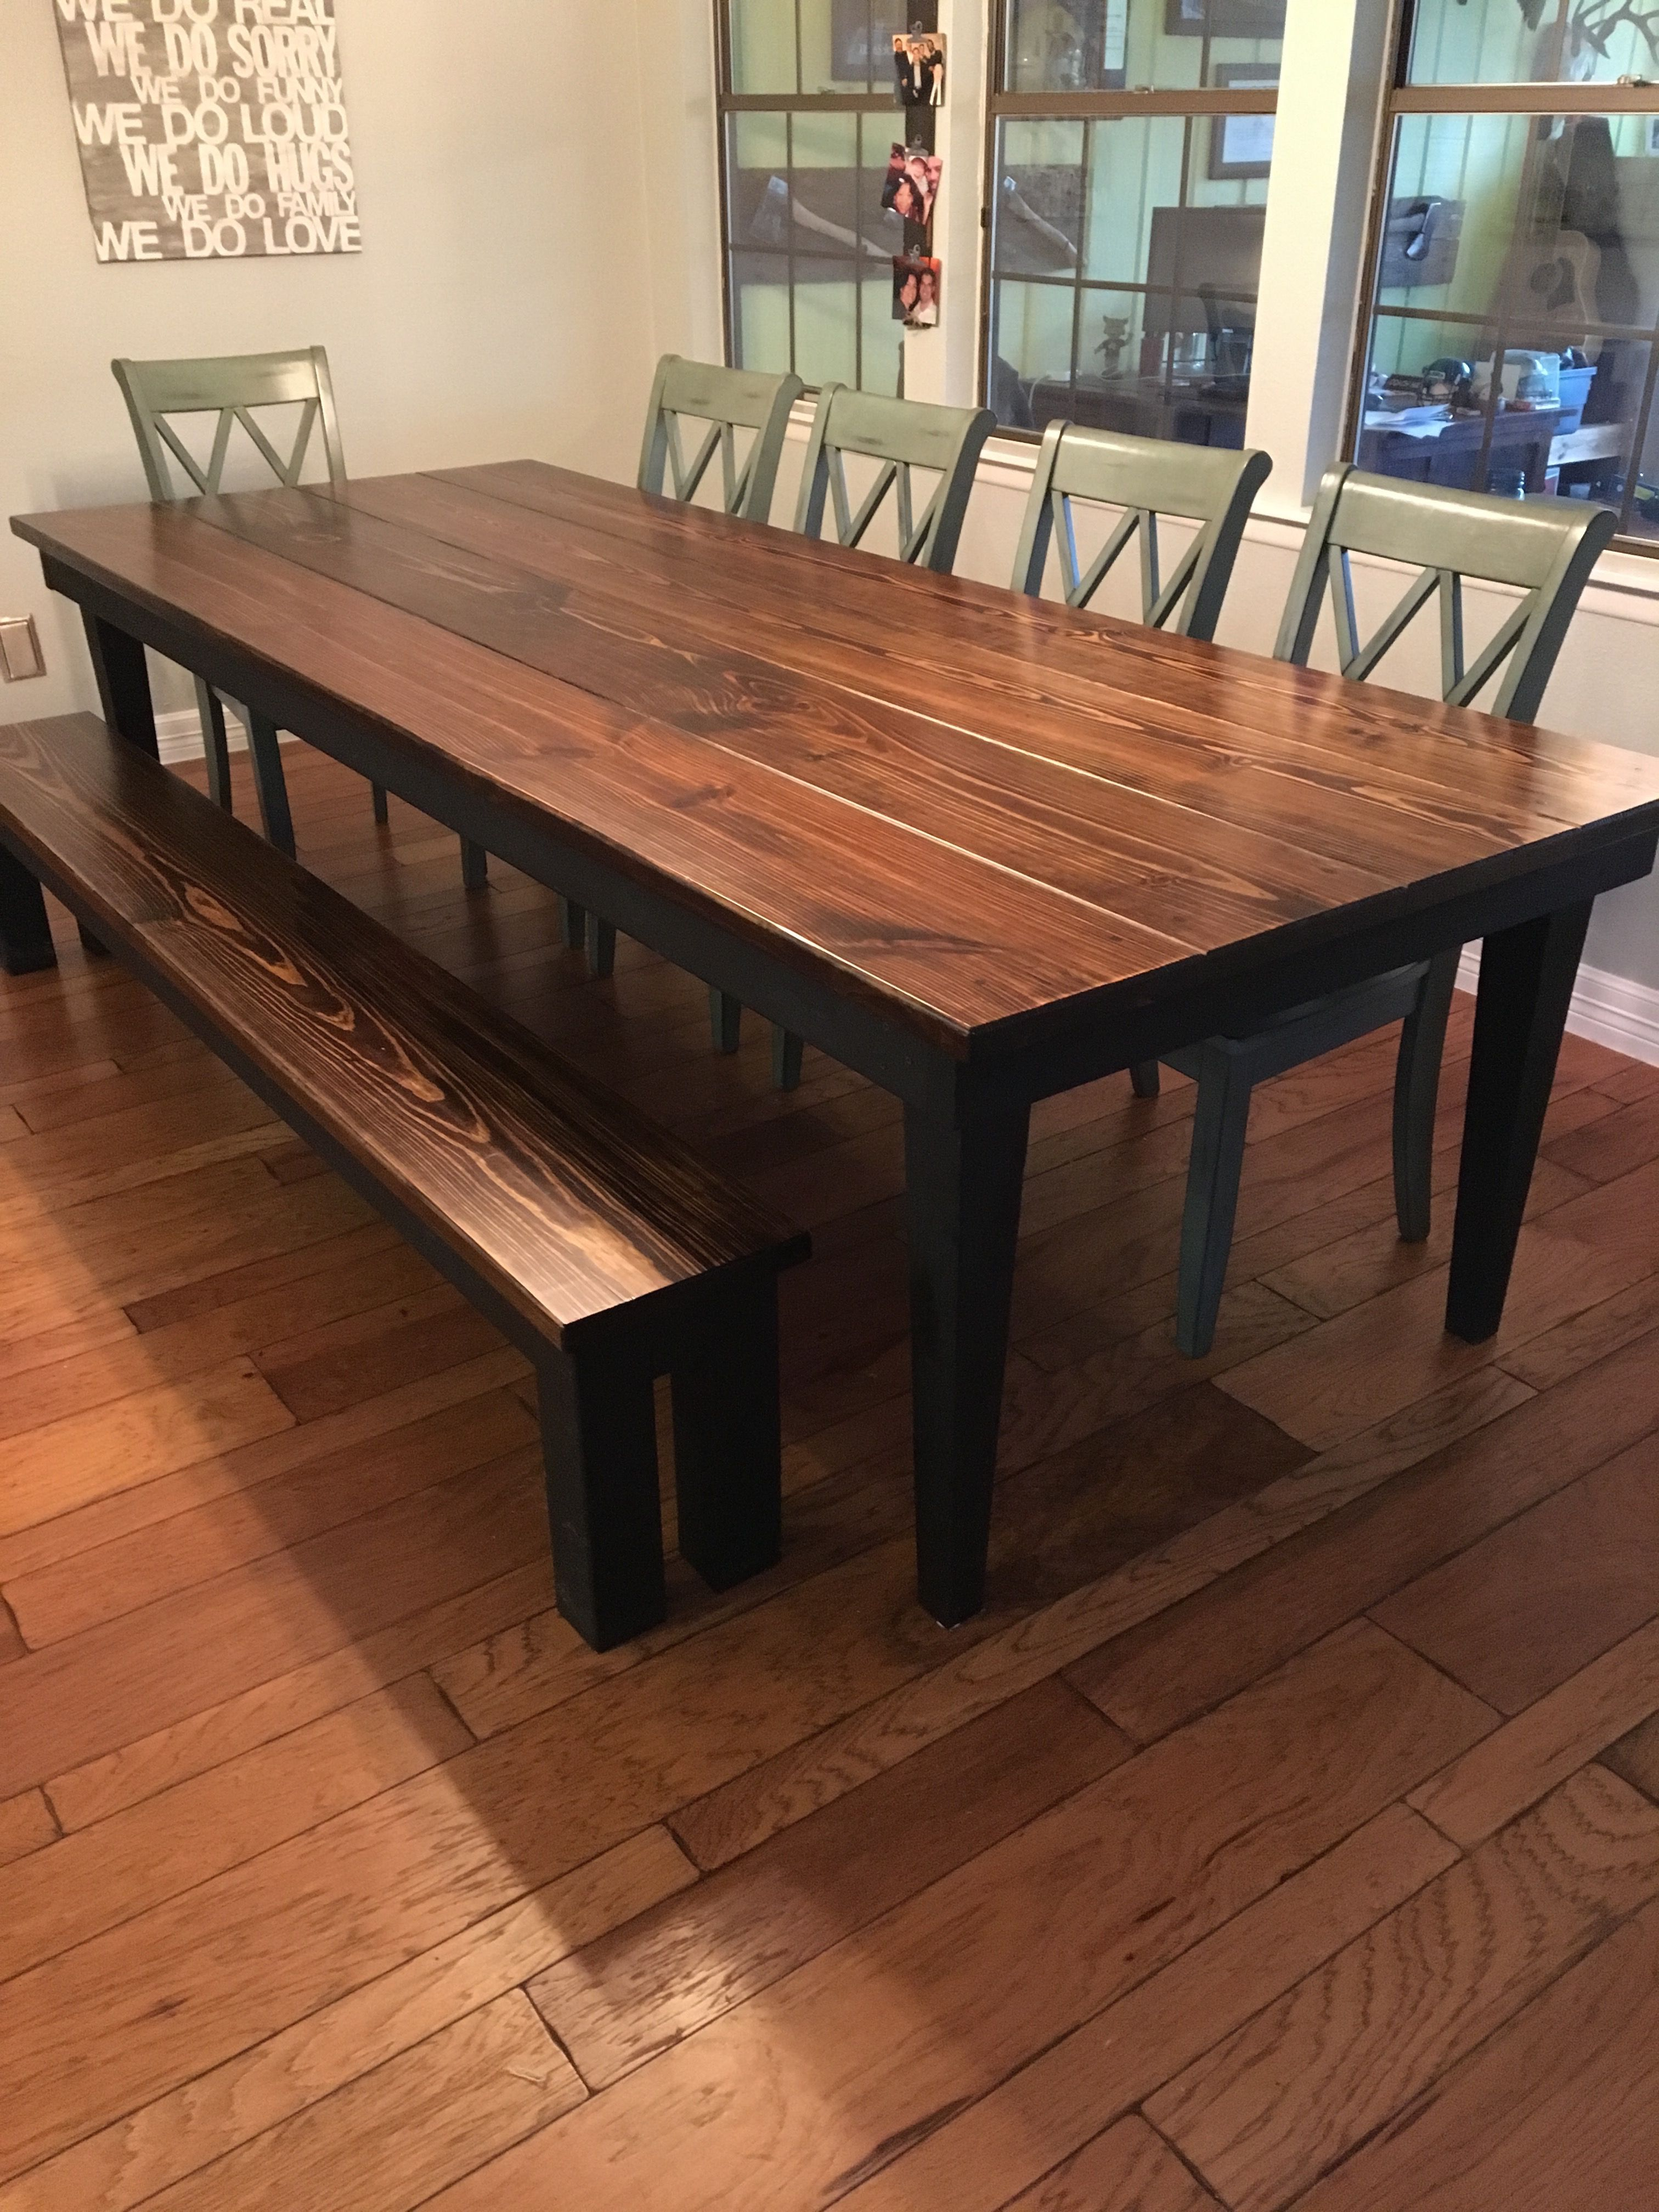 "James+James 9' x42"" Farmhouse Table with a traditional top ..."